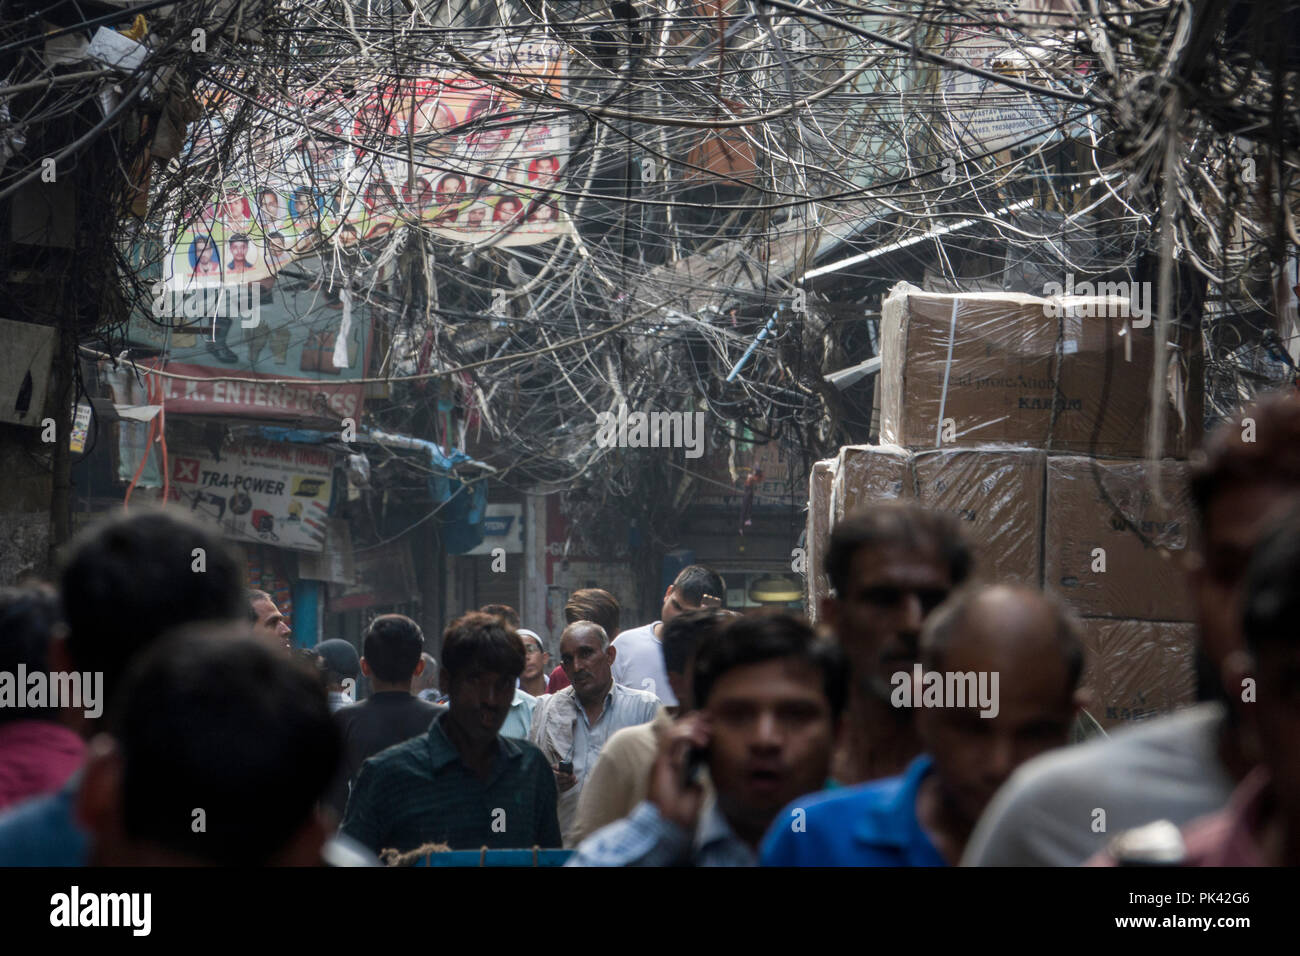 Pedestrians walking in narrow street with large tangled bird's nest of power cables overhead in Old Delhi, New Delhi, Delhi, India - Stock Image